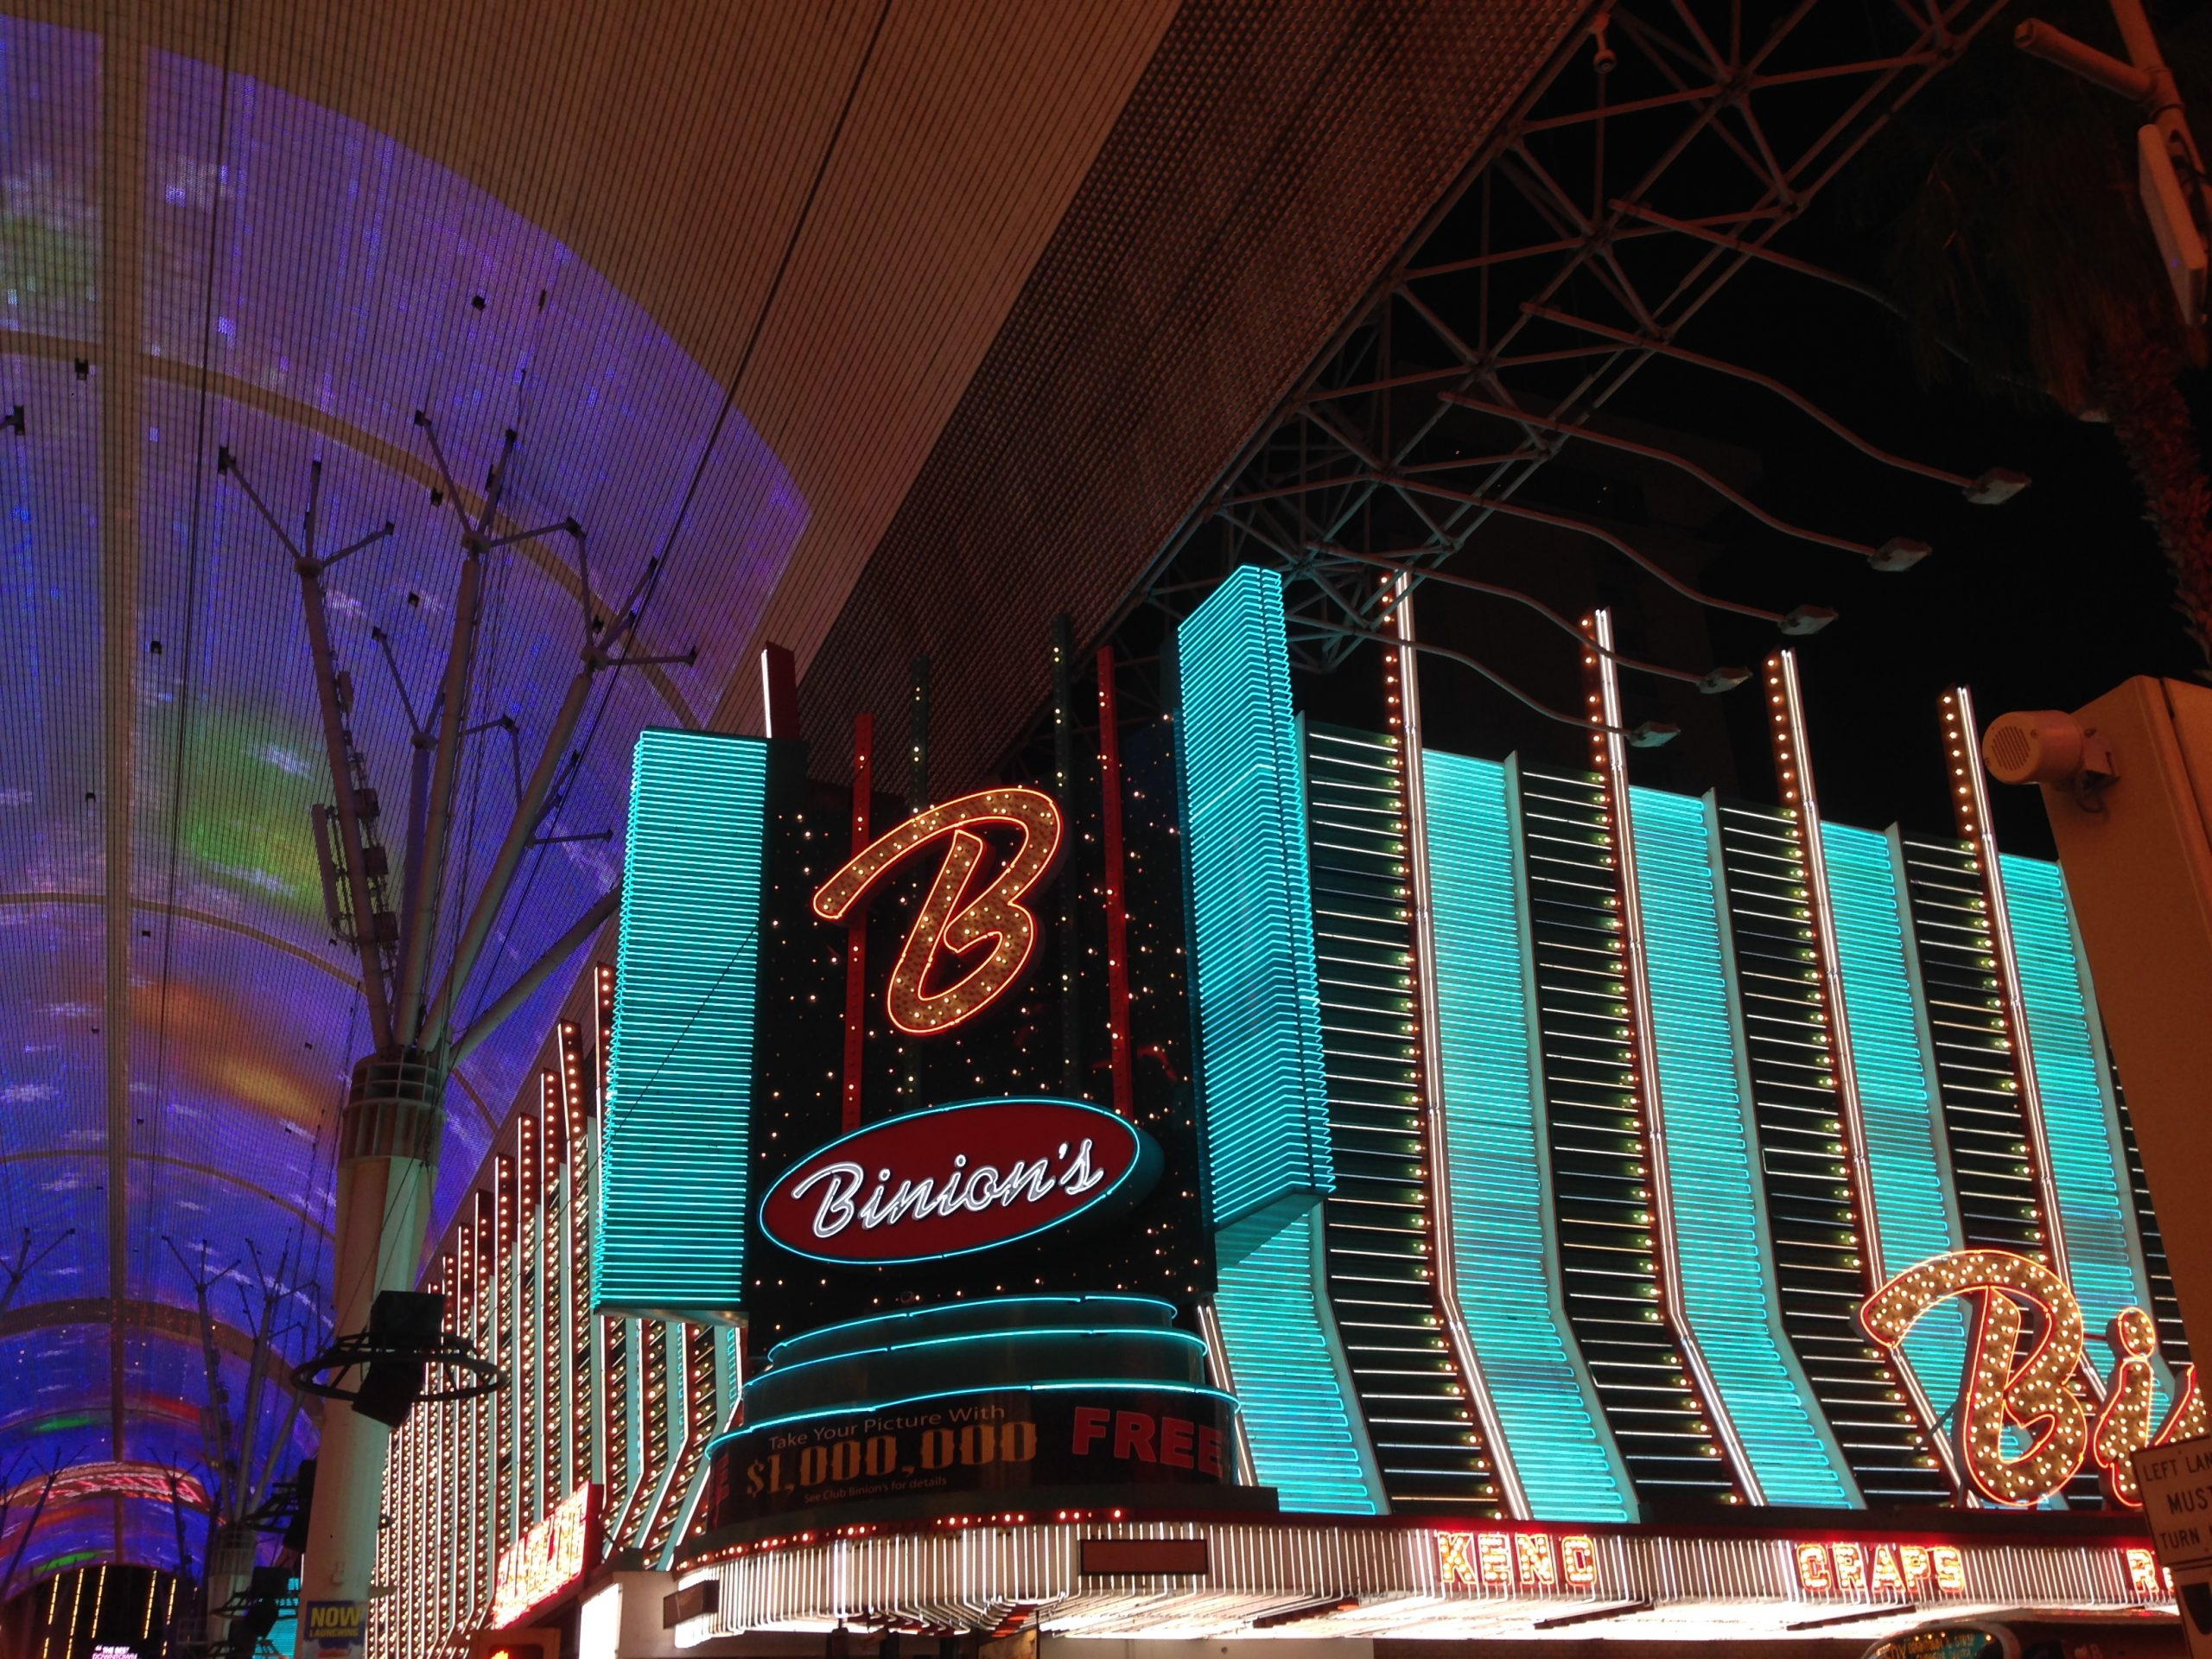 Binion's Casino 2018, Binion's Casino, Binion's Casino